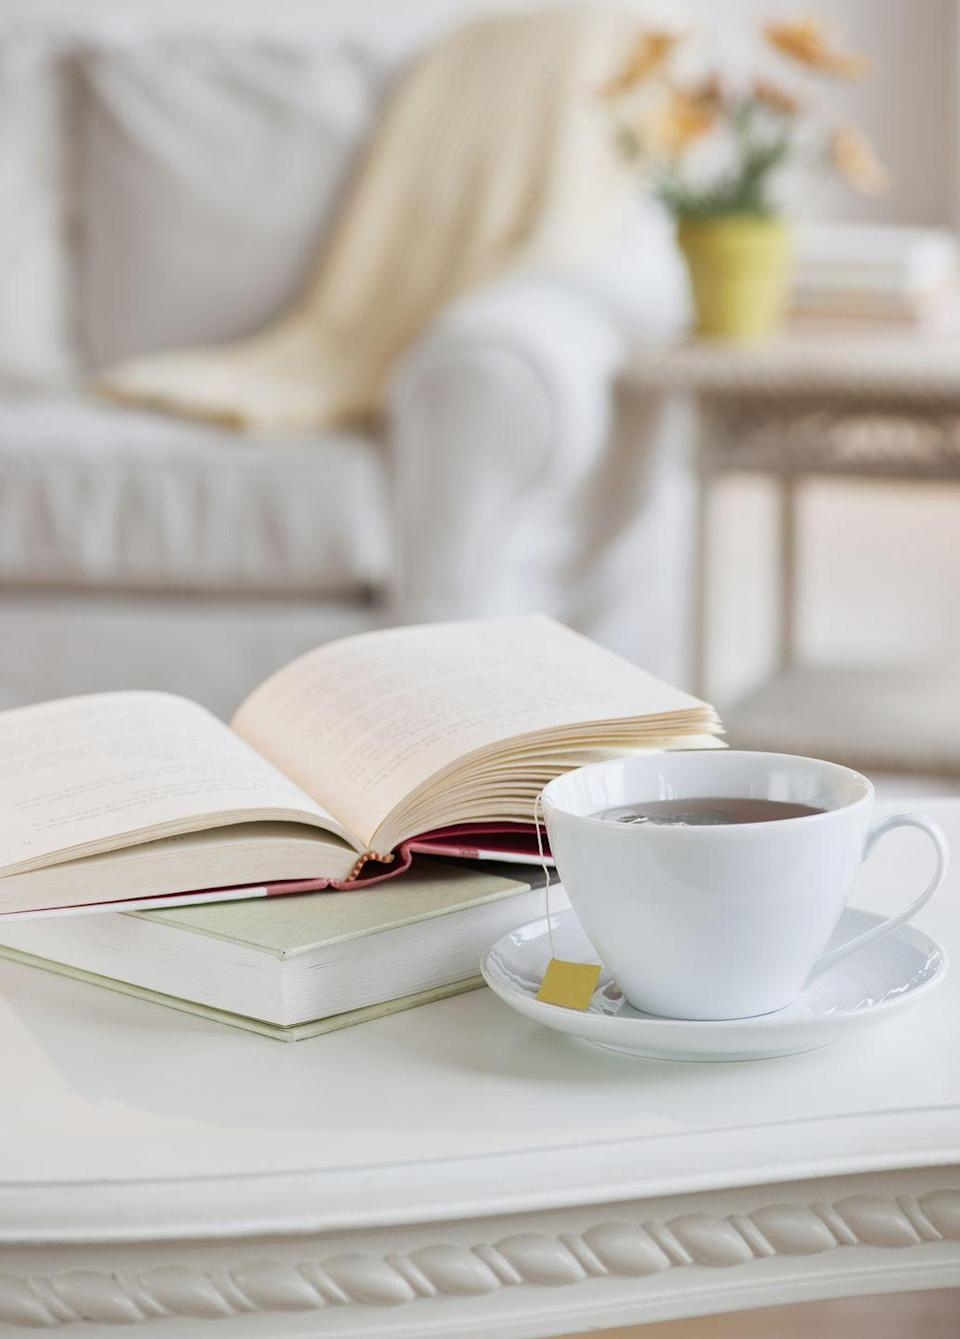 """<p>Curl up with a cup of tea and one of the <a href=""""https://www.oprahmag.com/entertainment/books/g31225657/best-books-march-2020/"""" rel=""""nofollow noopener"""" target=""""_blank"""" data-ylk=""""slk:best new books"""" class=""""link rapid-noclick-resp"""">best new books</a>. And, if you're craving company, encourage your book club to take things online and use <a href=""""https://www.oprahmag.com/entertainment/a31047508/book-club-questions/"""" rel=""""nofollow noopener"""" target=""""_blank"""" data-ylk=""""slk:these questions"""" class=""""link rapid-noclick-resp"""">these questions</a> as a guide to spark conversation. Apps like <a href=""""https://zoom.us/ent?zcid=2582"""" rel=""""nofollow noopener"""" target=""""_blank"""" data-ylk=""""slk:Zoom"""" class=""""link rapid-noclick-resp"""">Zoom</a> make it easy to turn your typical wine and cheese gathering into a digital experience with your friends. If you're a Tolstoy fan, you can also join <a href=""""https://apublicspace.org/news/detail/tolstoy-together"""" rel=""""nofollow noopener"""" target=""""_blank"""" data-ylk=""""slk:this community"""" class=""""link rapid-noclick-resp"""">this community</a> where folks are reading 12 pages a day of <em>War and Peace</em> and discussing it on the web.</p>"""